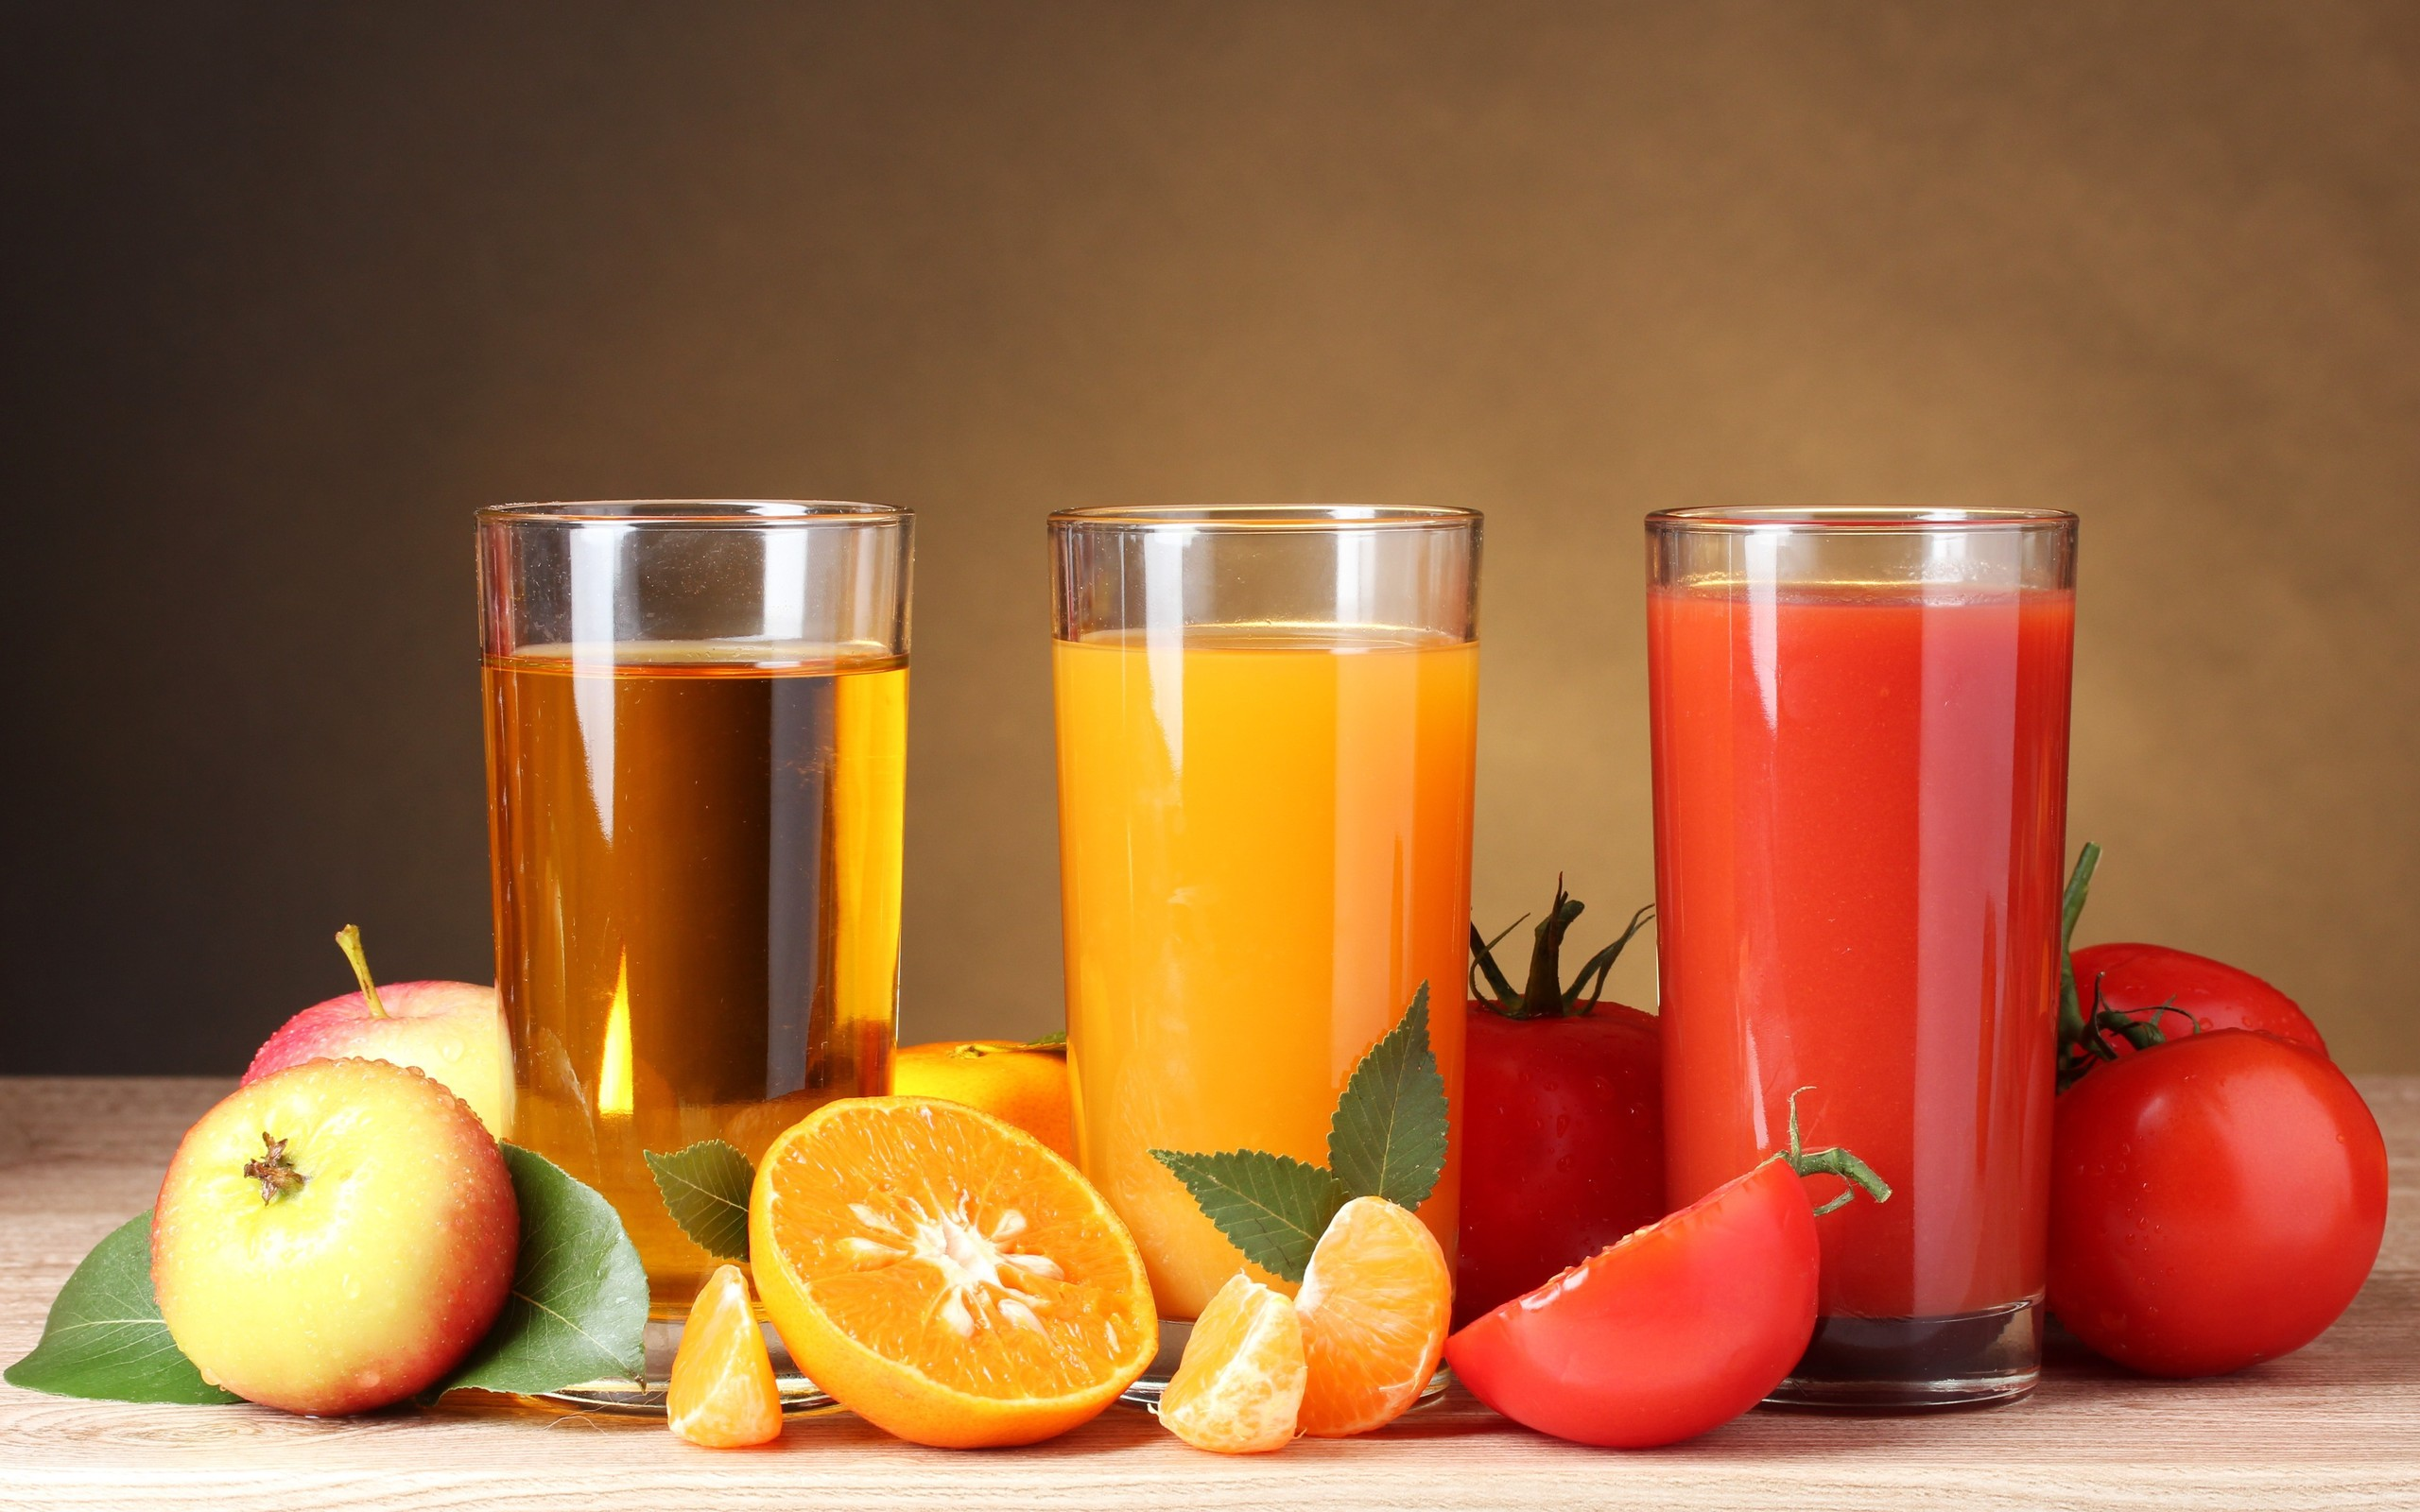 Food And Drink Wallpapers Cool Hd Wallpaper Computer Images